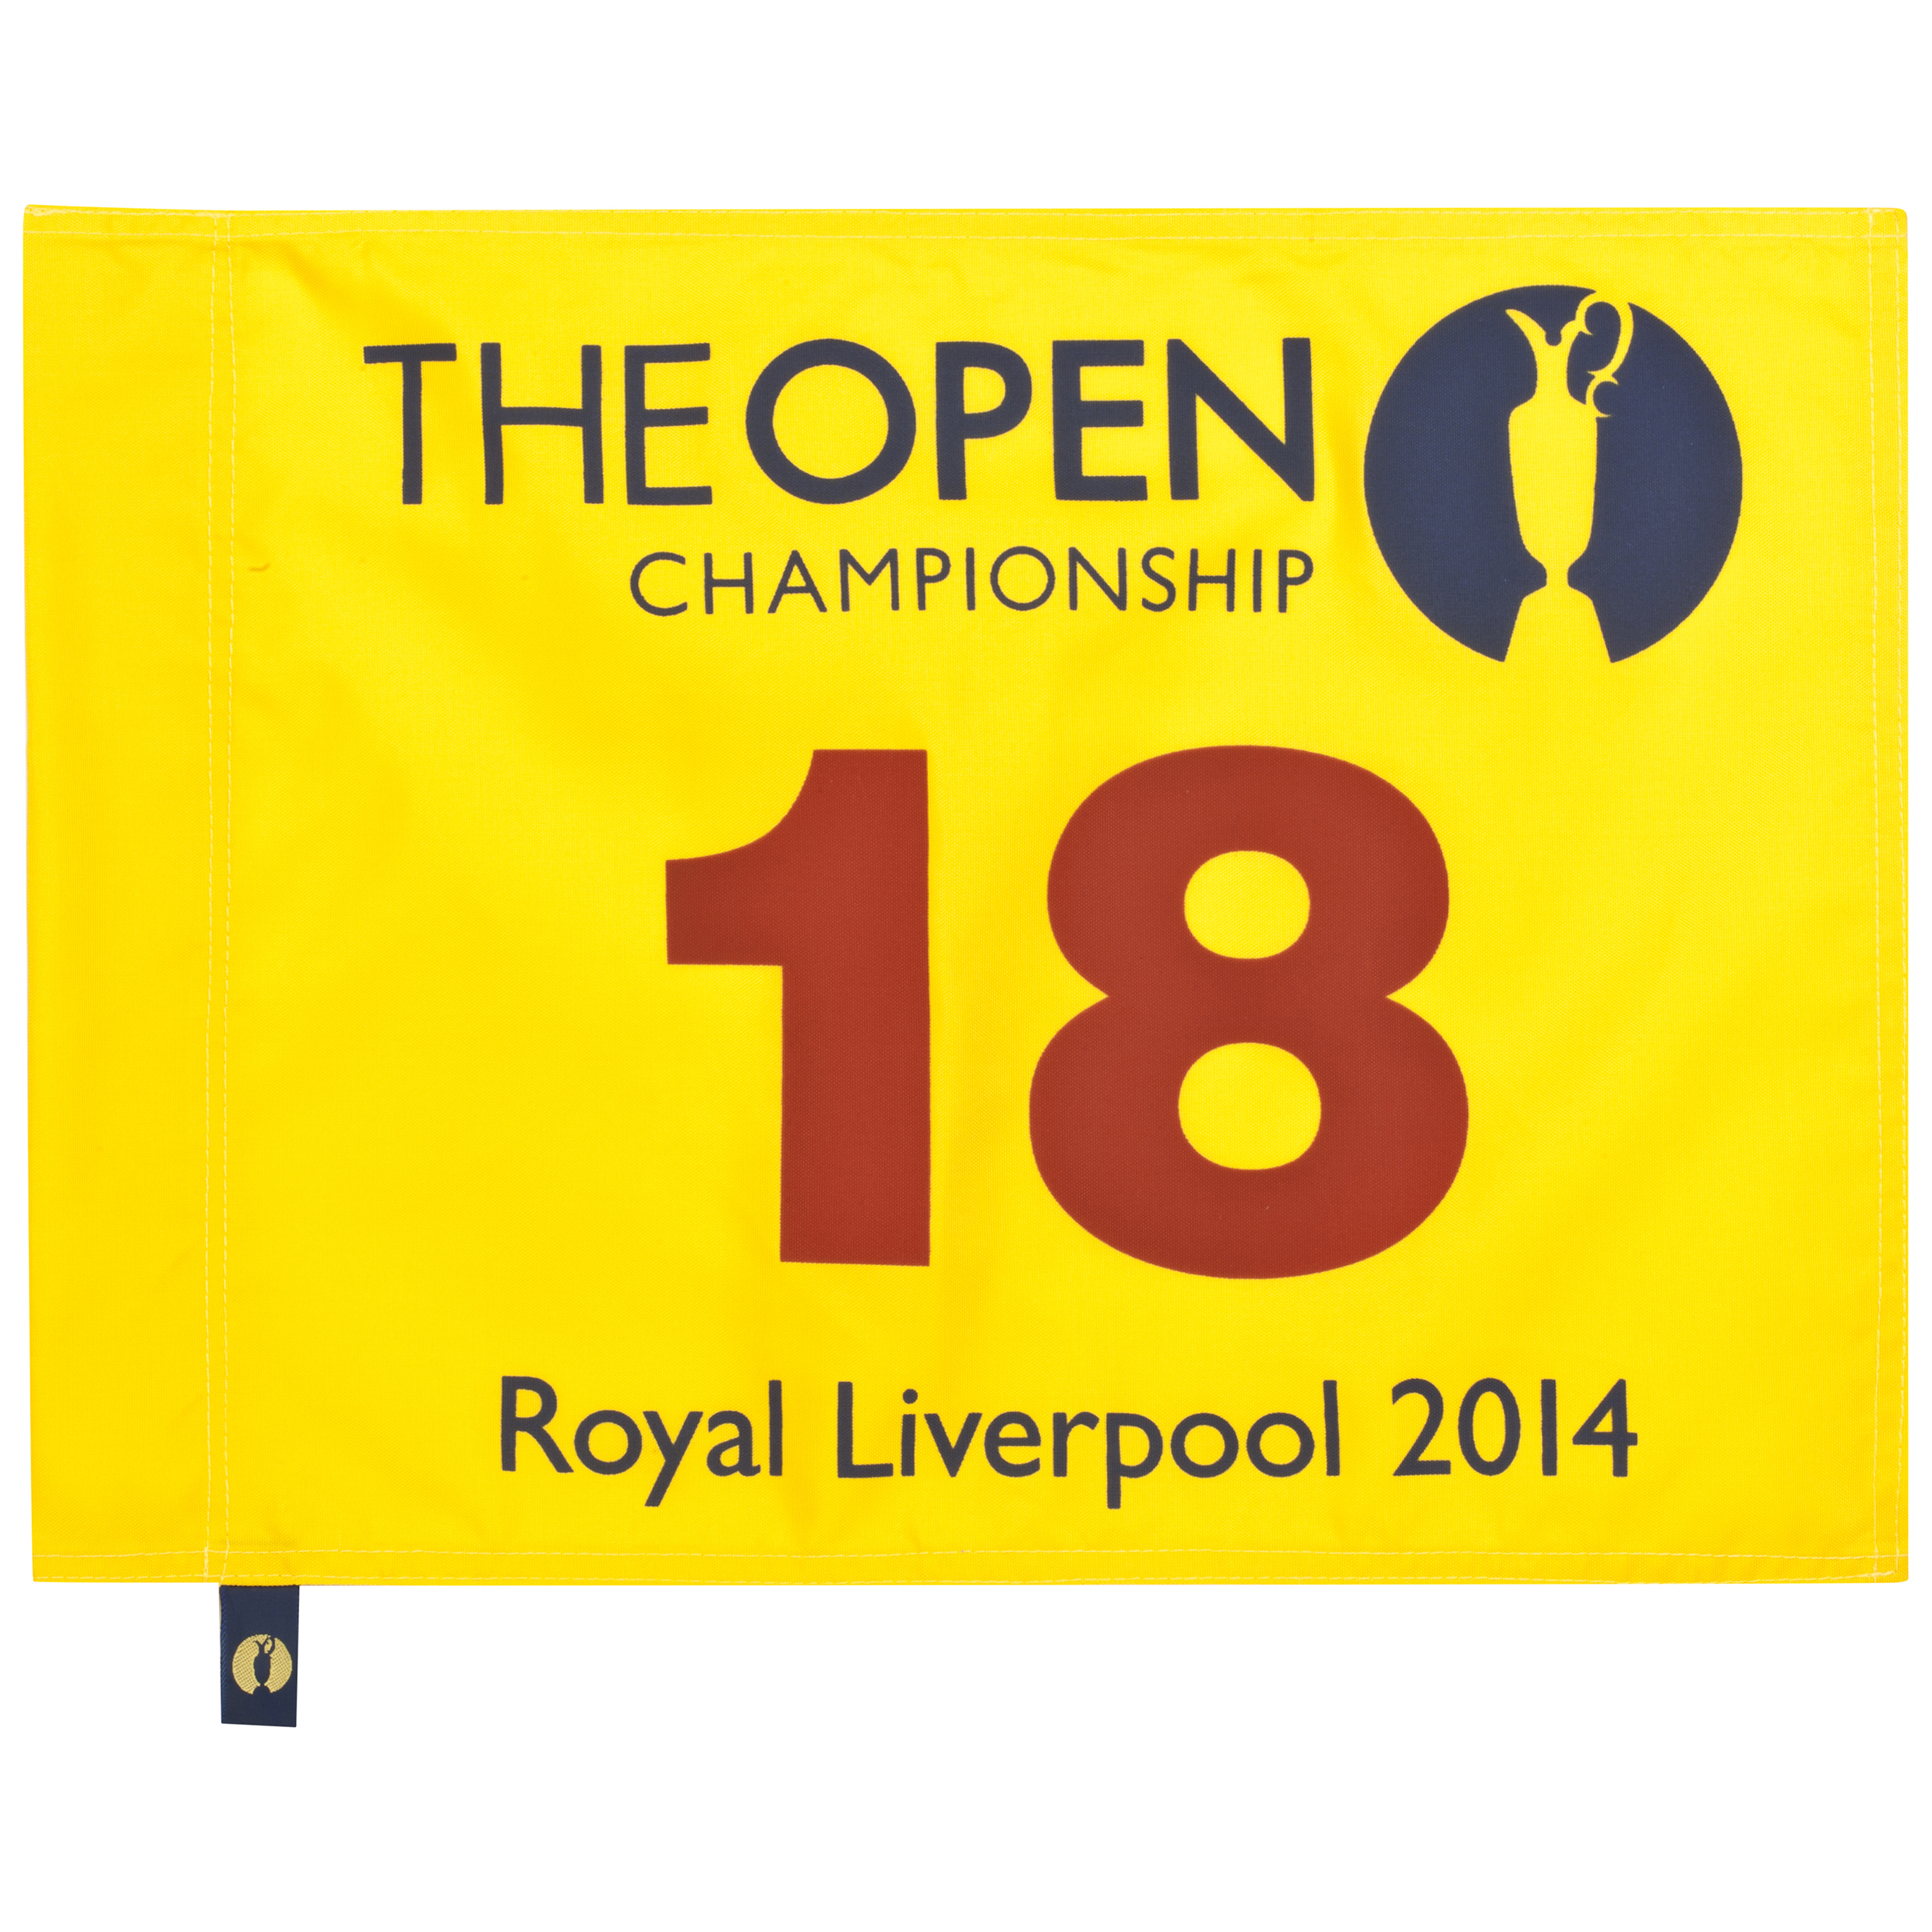 The Open Championship Royal Liverpool 2014 Pin Flag